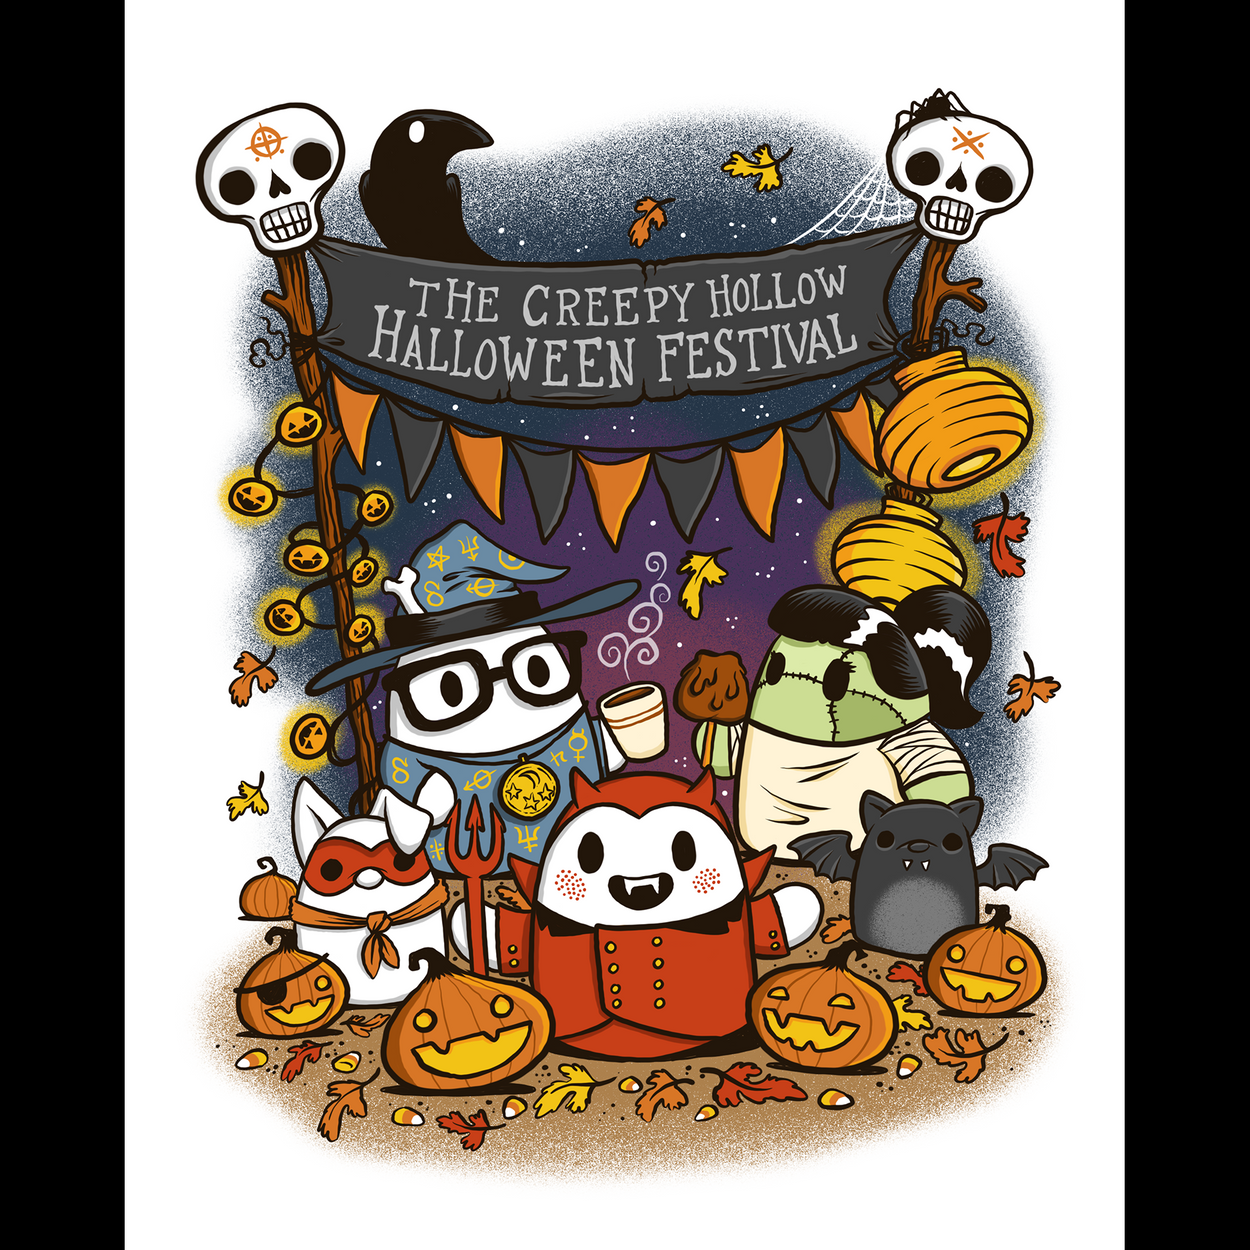 Creepy Hallow Halloween Festival - Print (NYCC Exclusive)